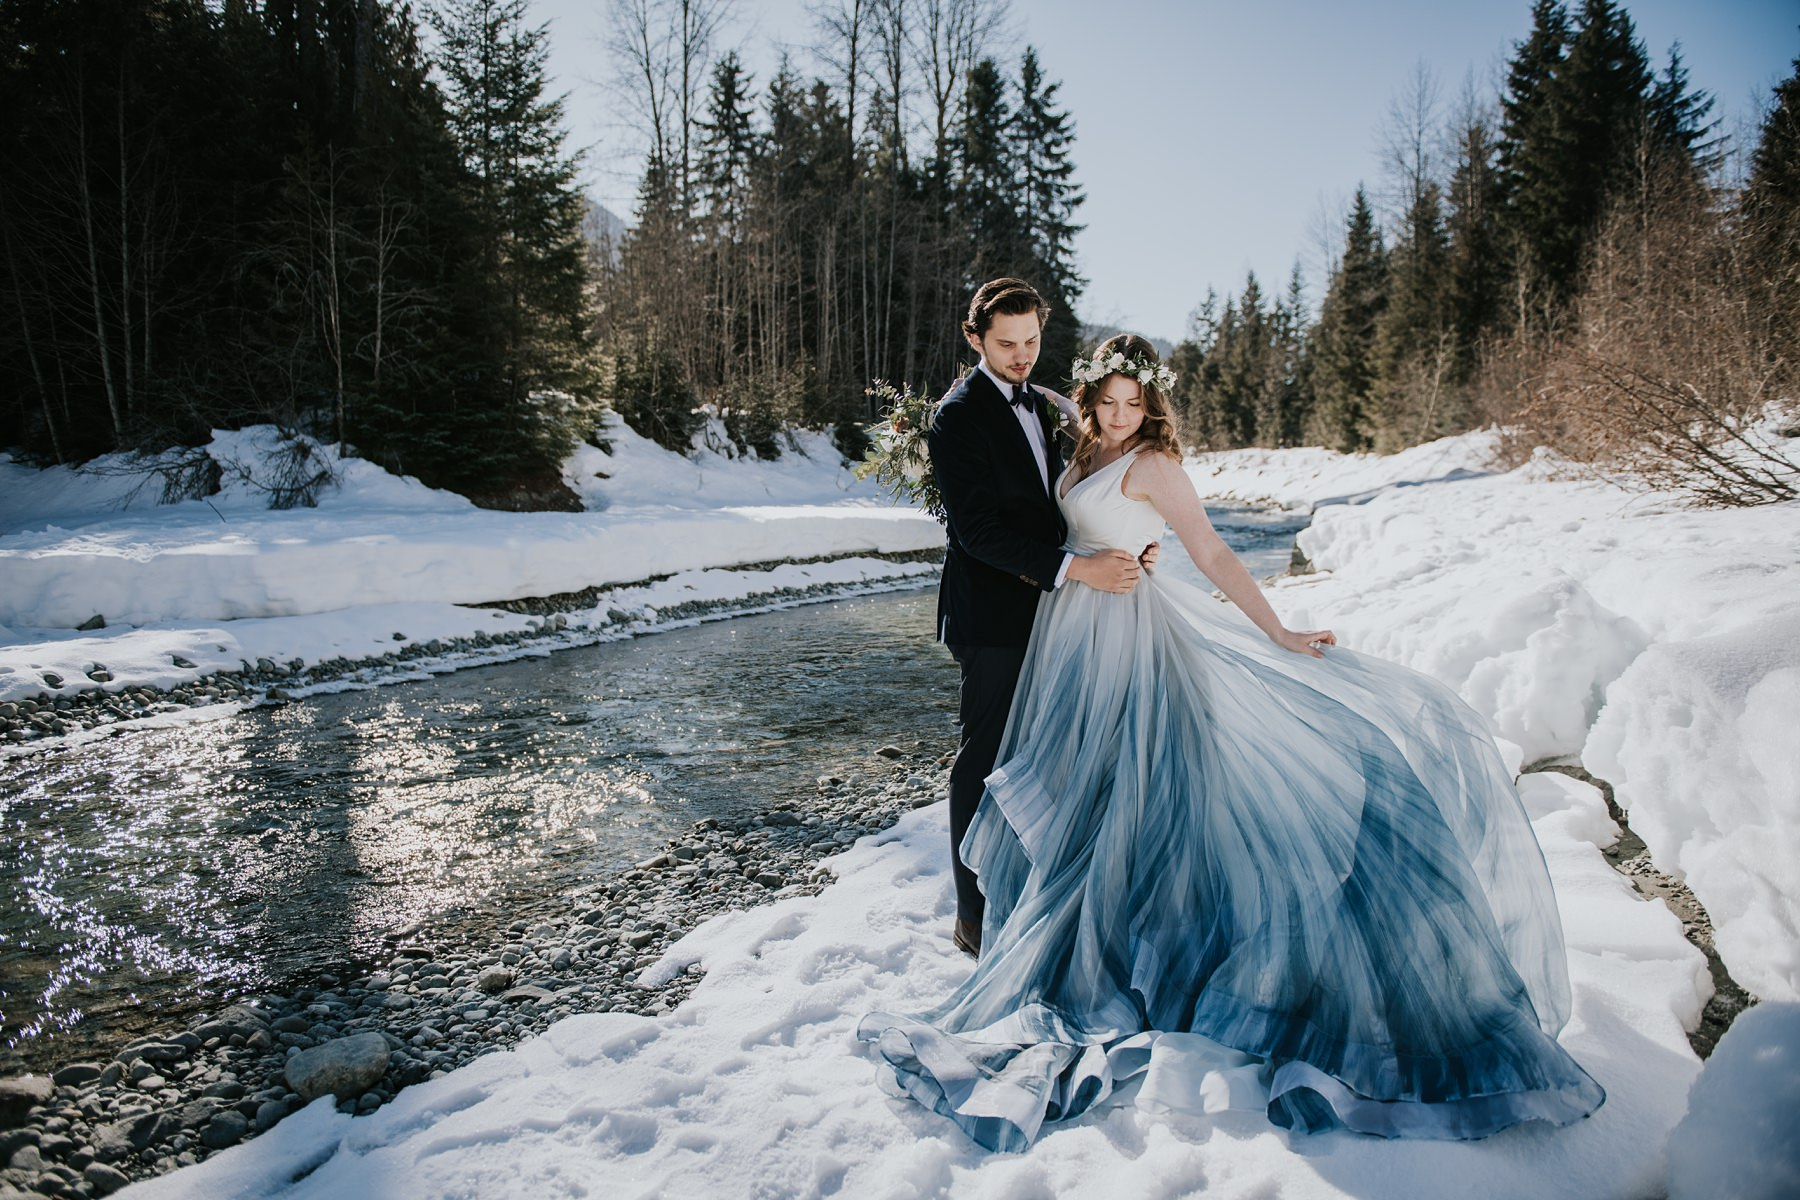 bride and groom at river in winter